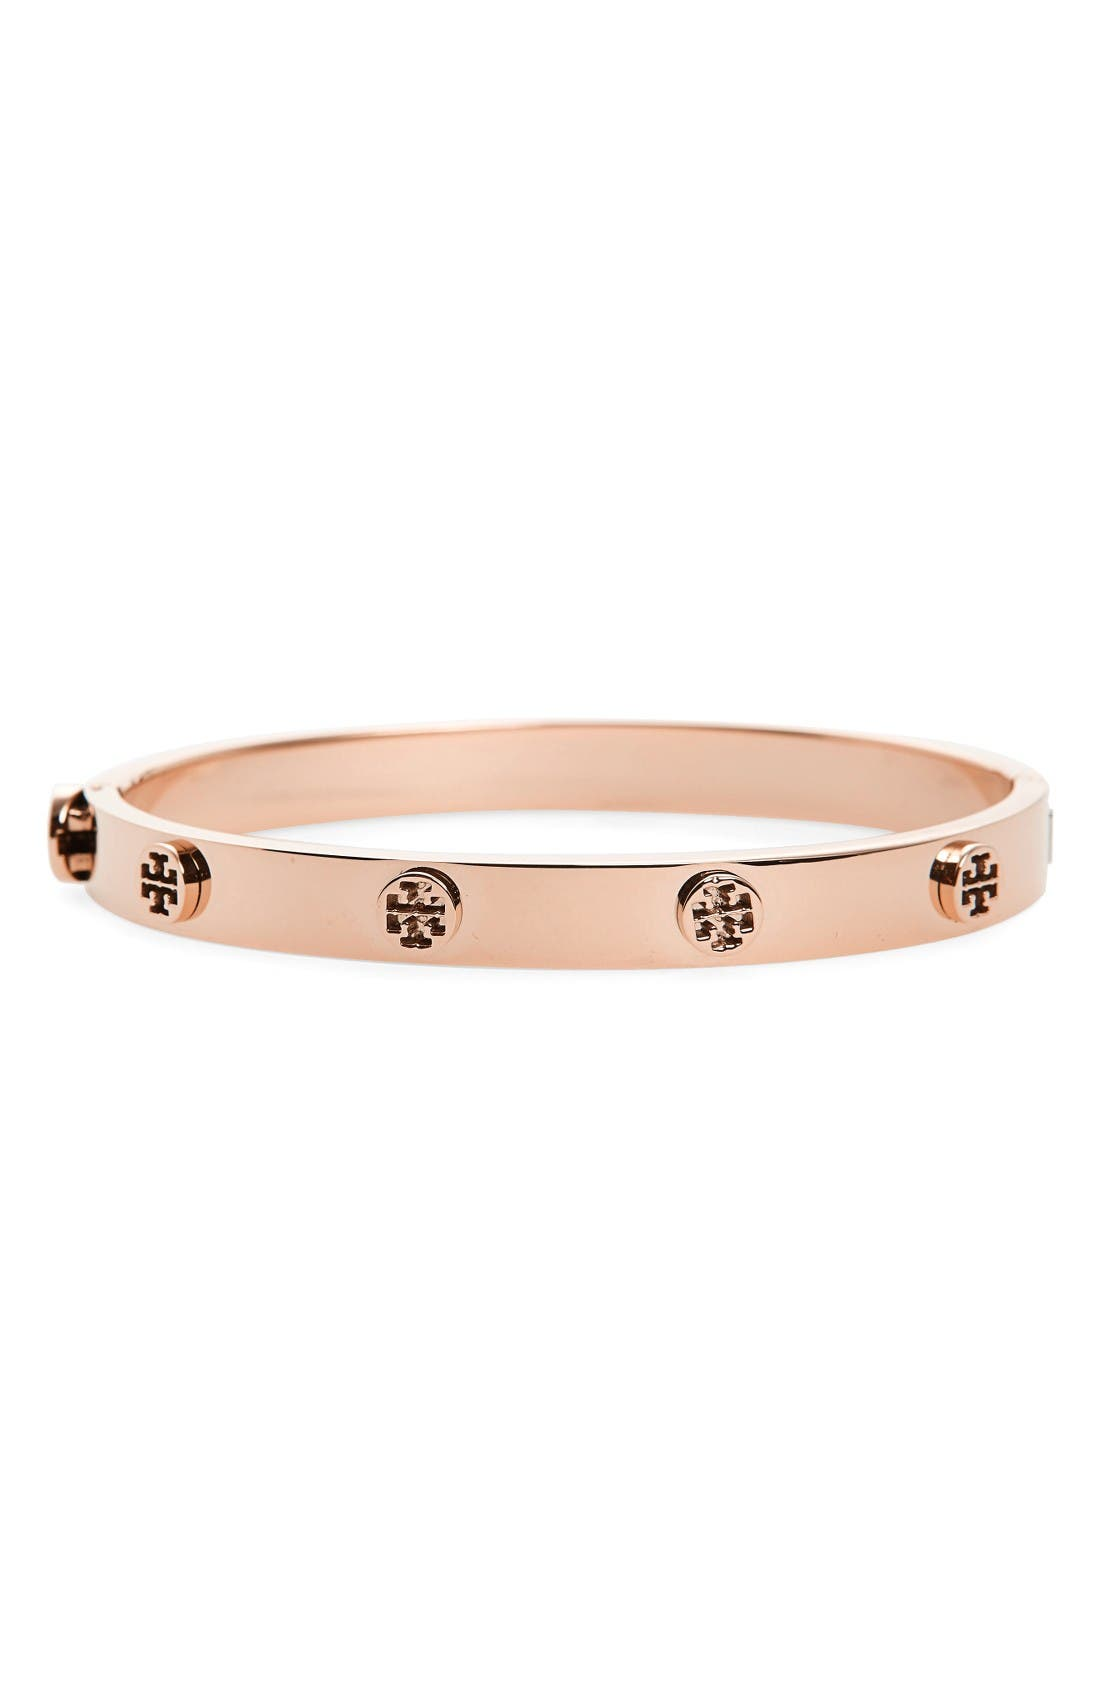 Tory Burch Logo Stud Bangle